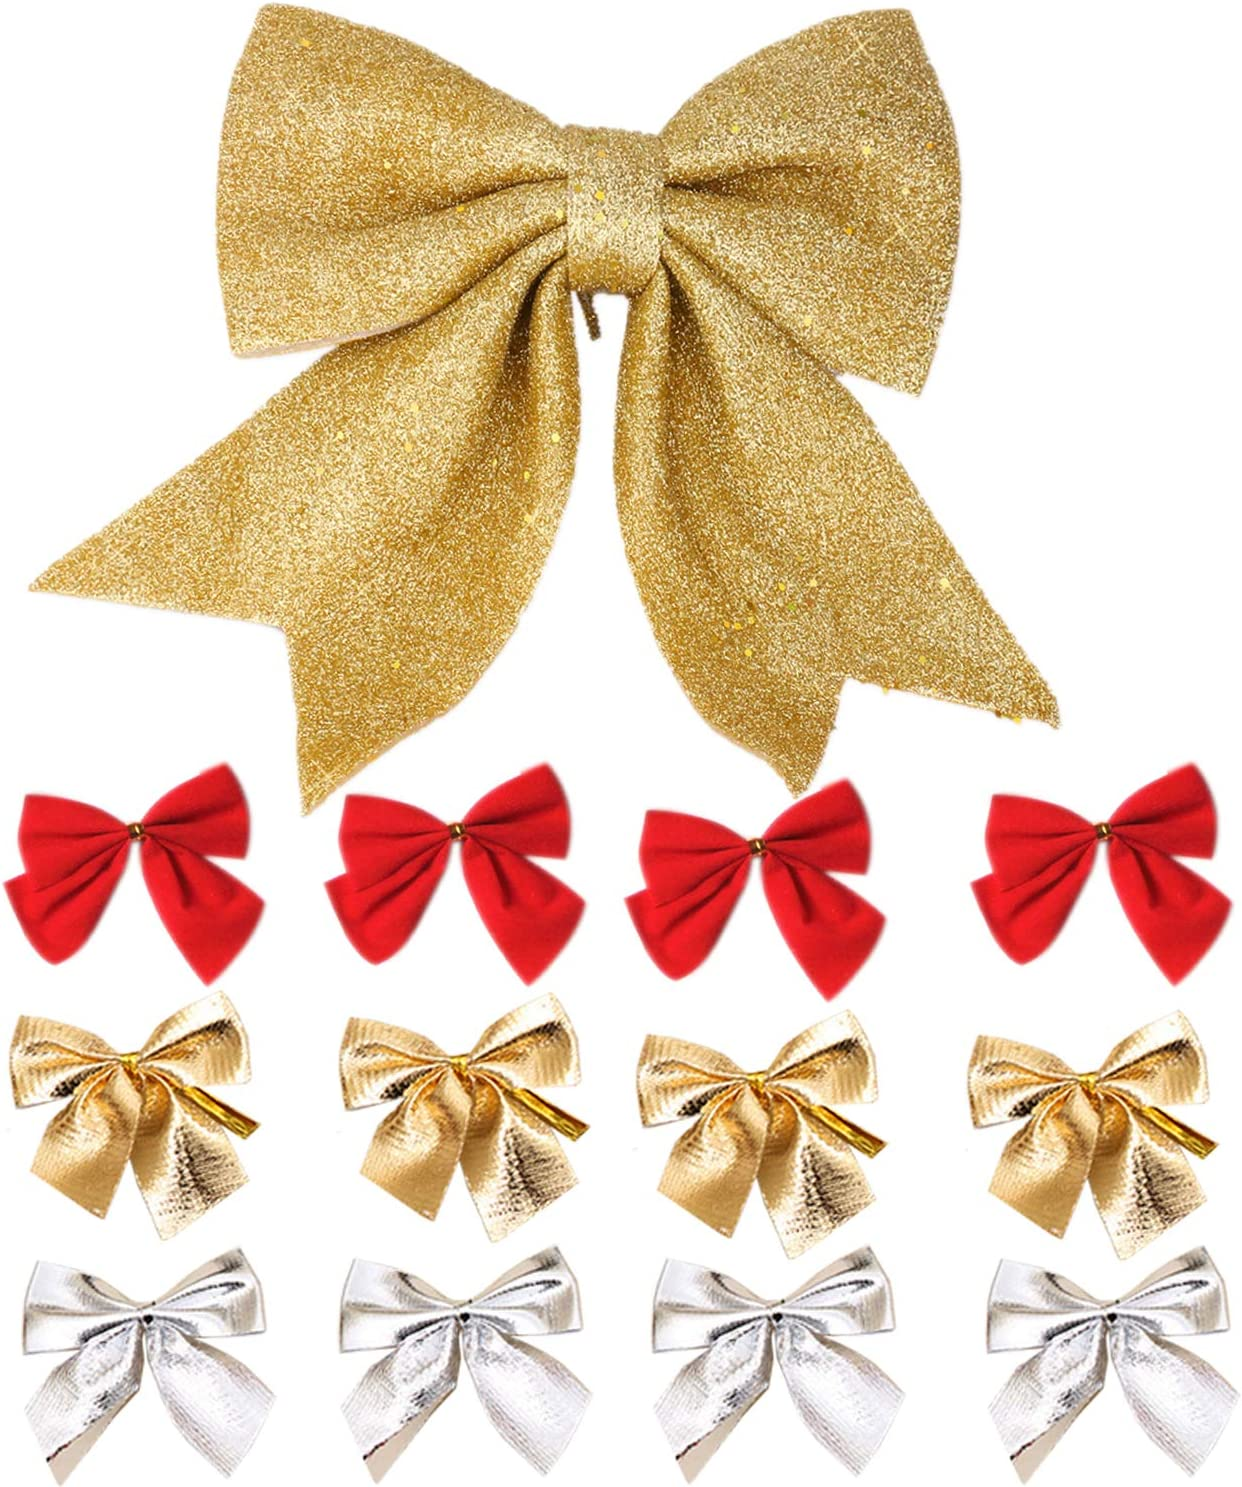 12 Inch Gold Christmas Tree Large and All items in Regular discount the store Bow Topper Small